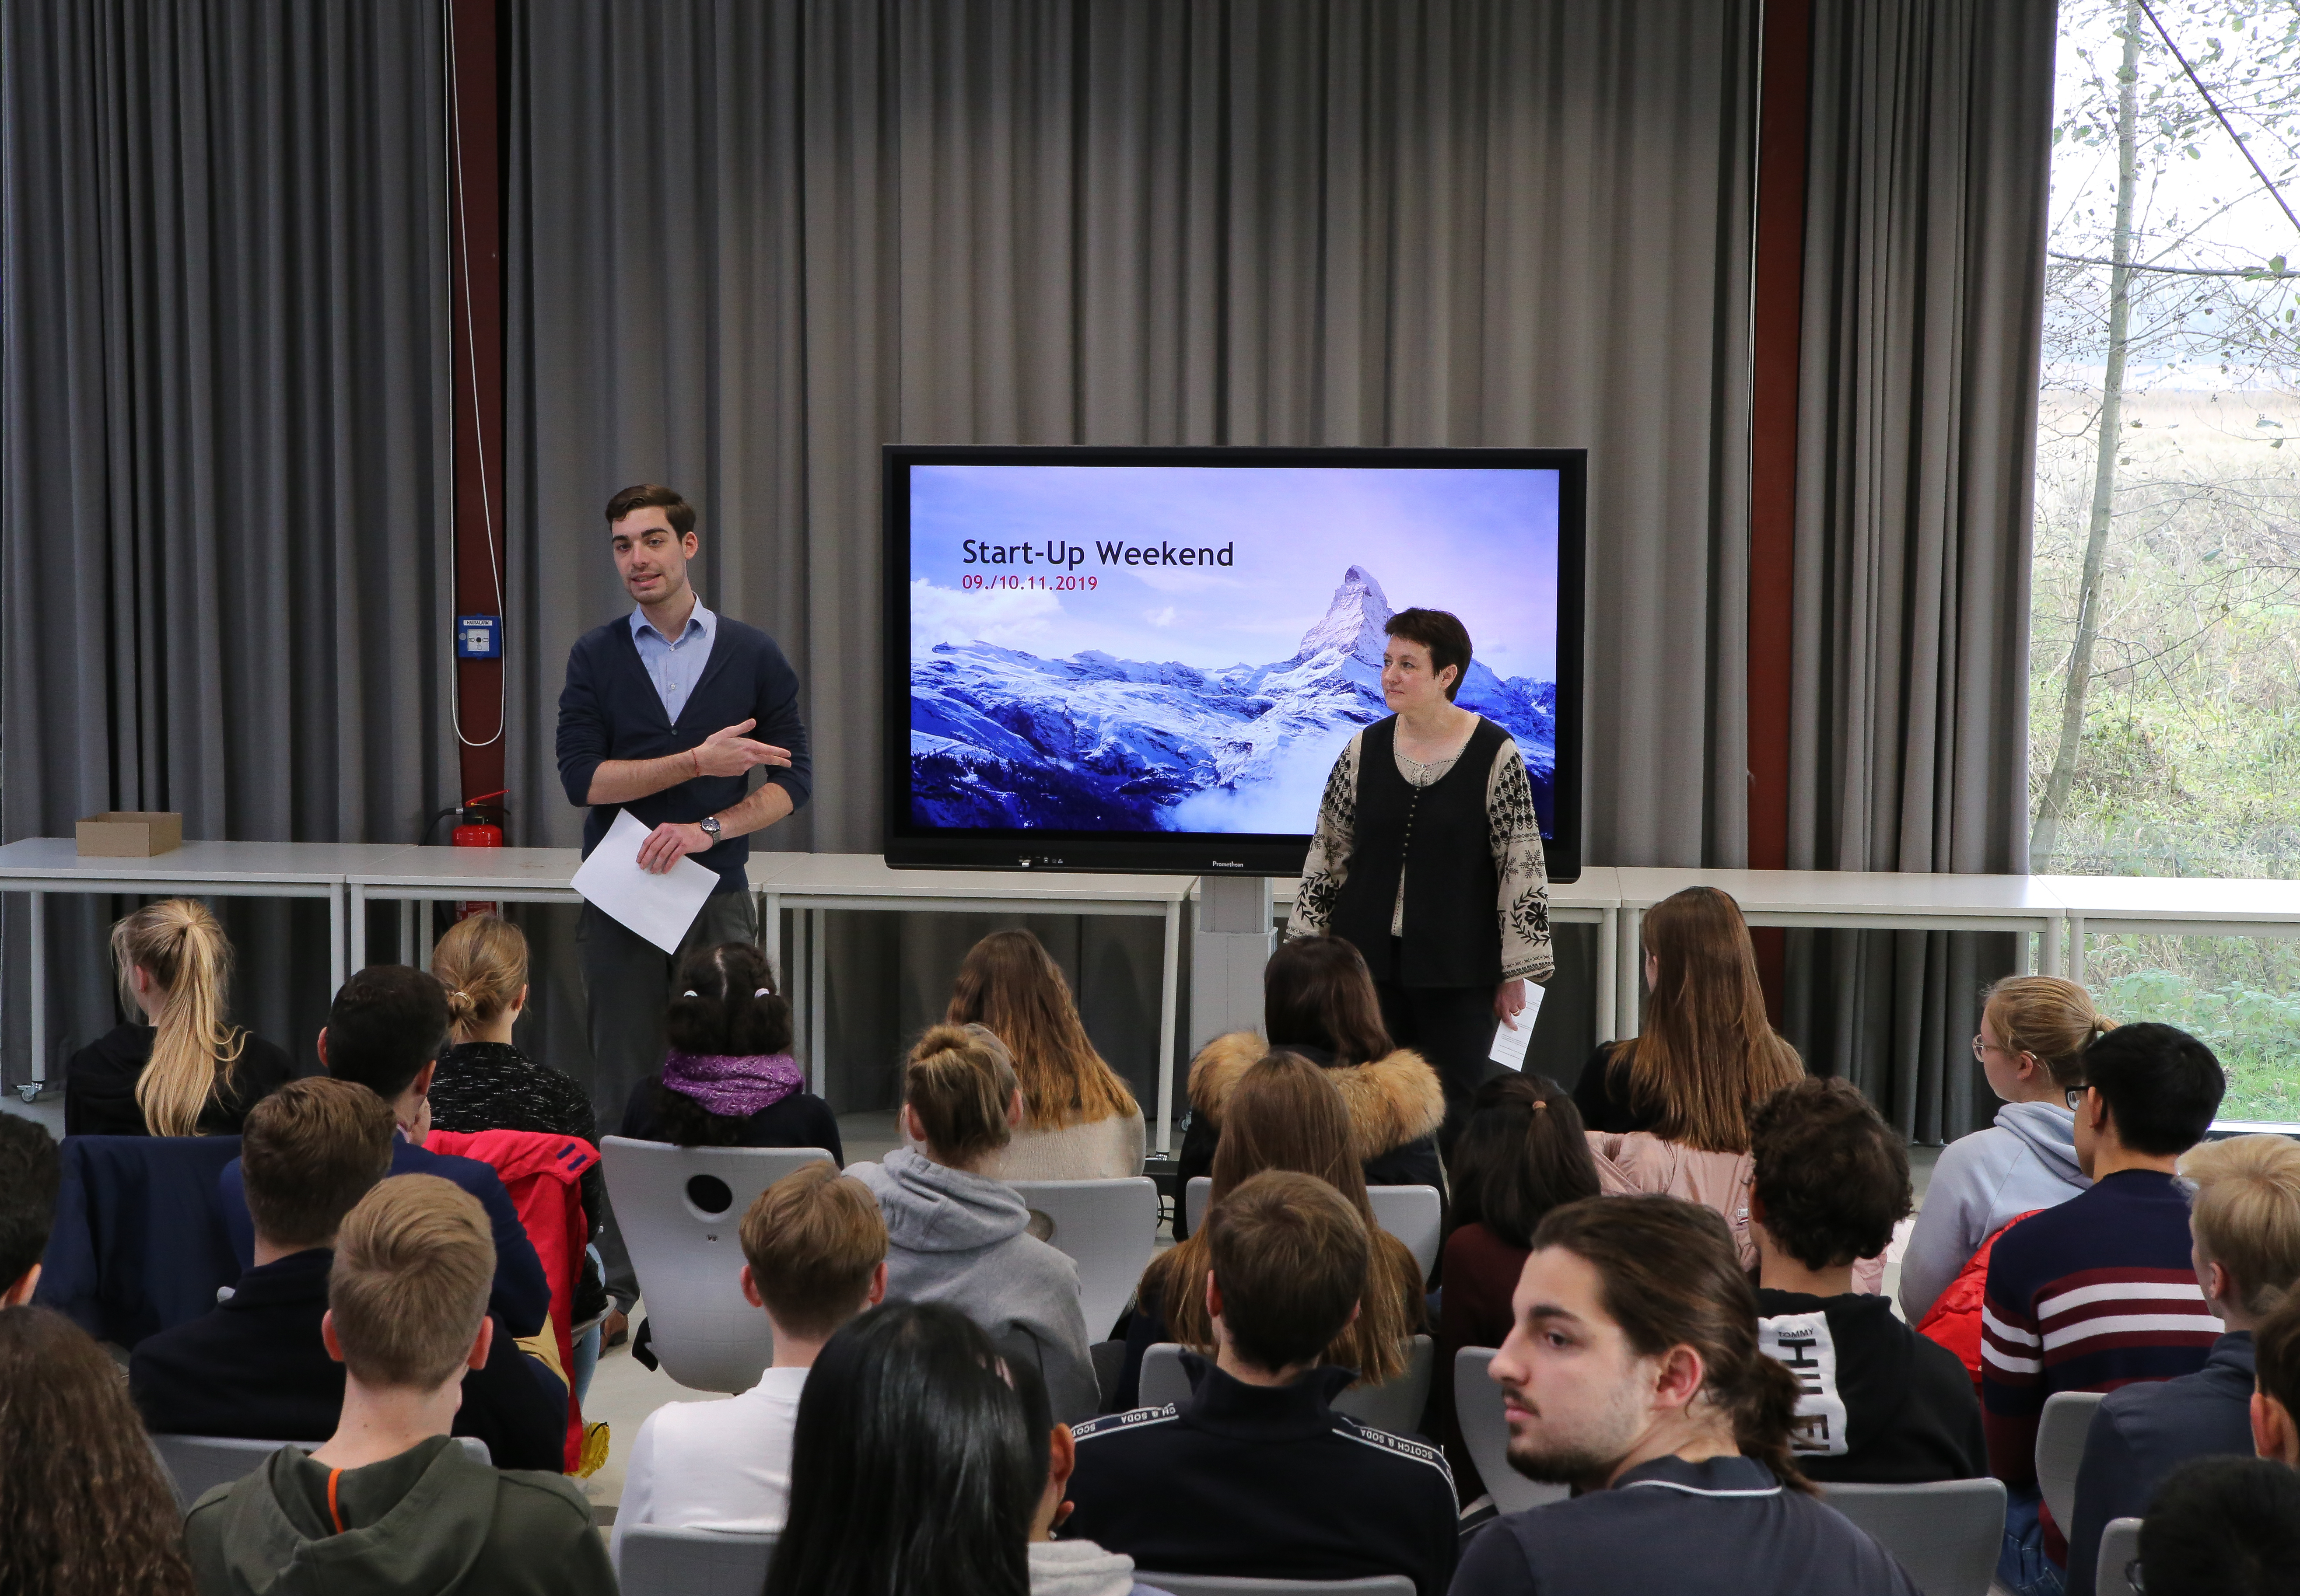 Erstes Louisenlunder Start-up Weekend